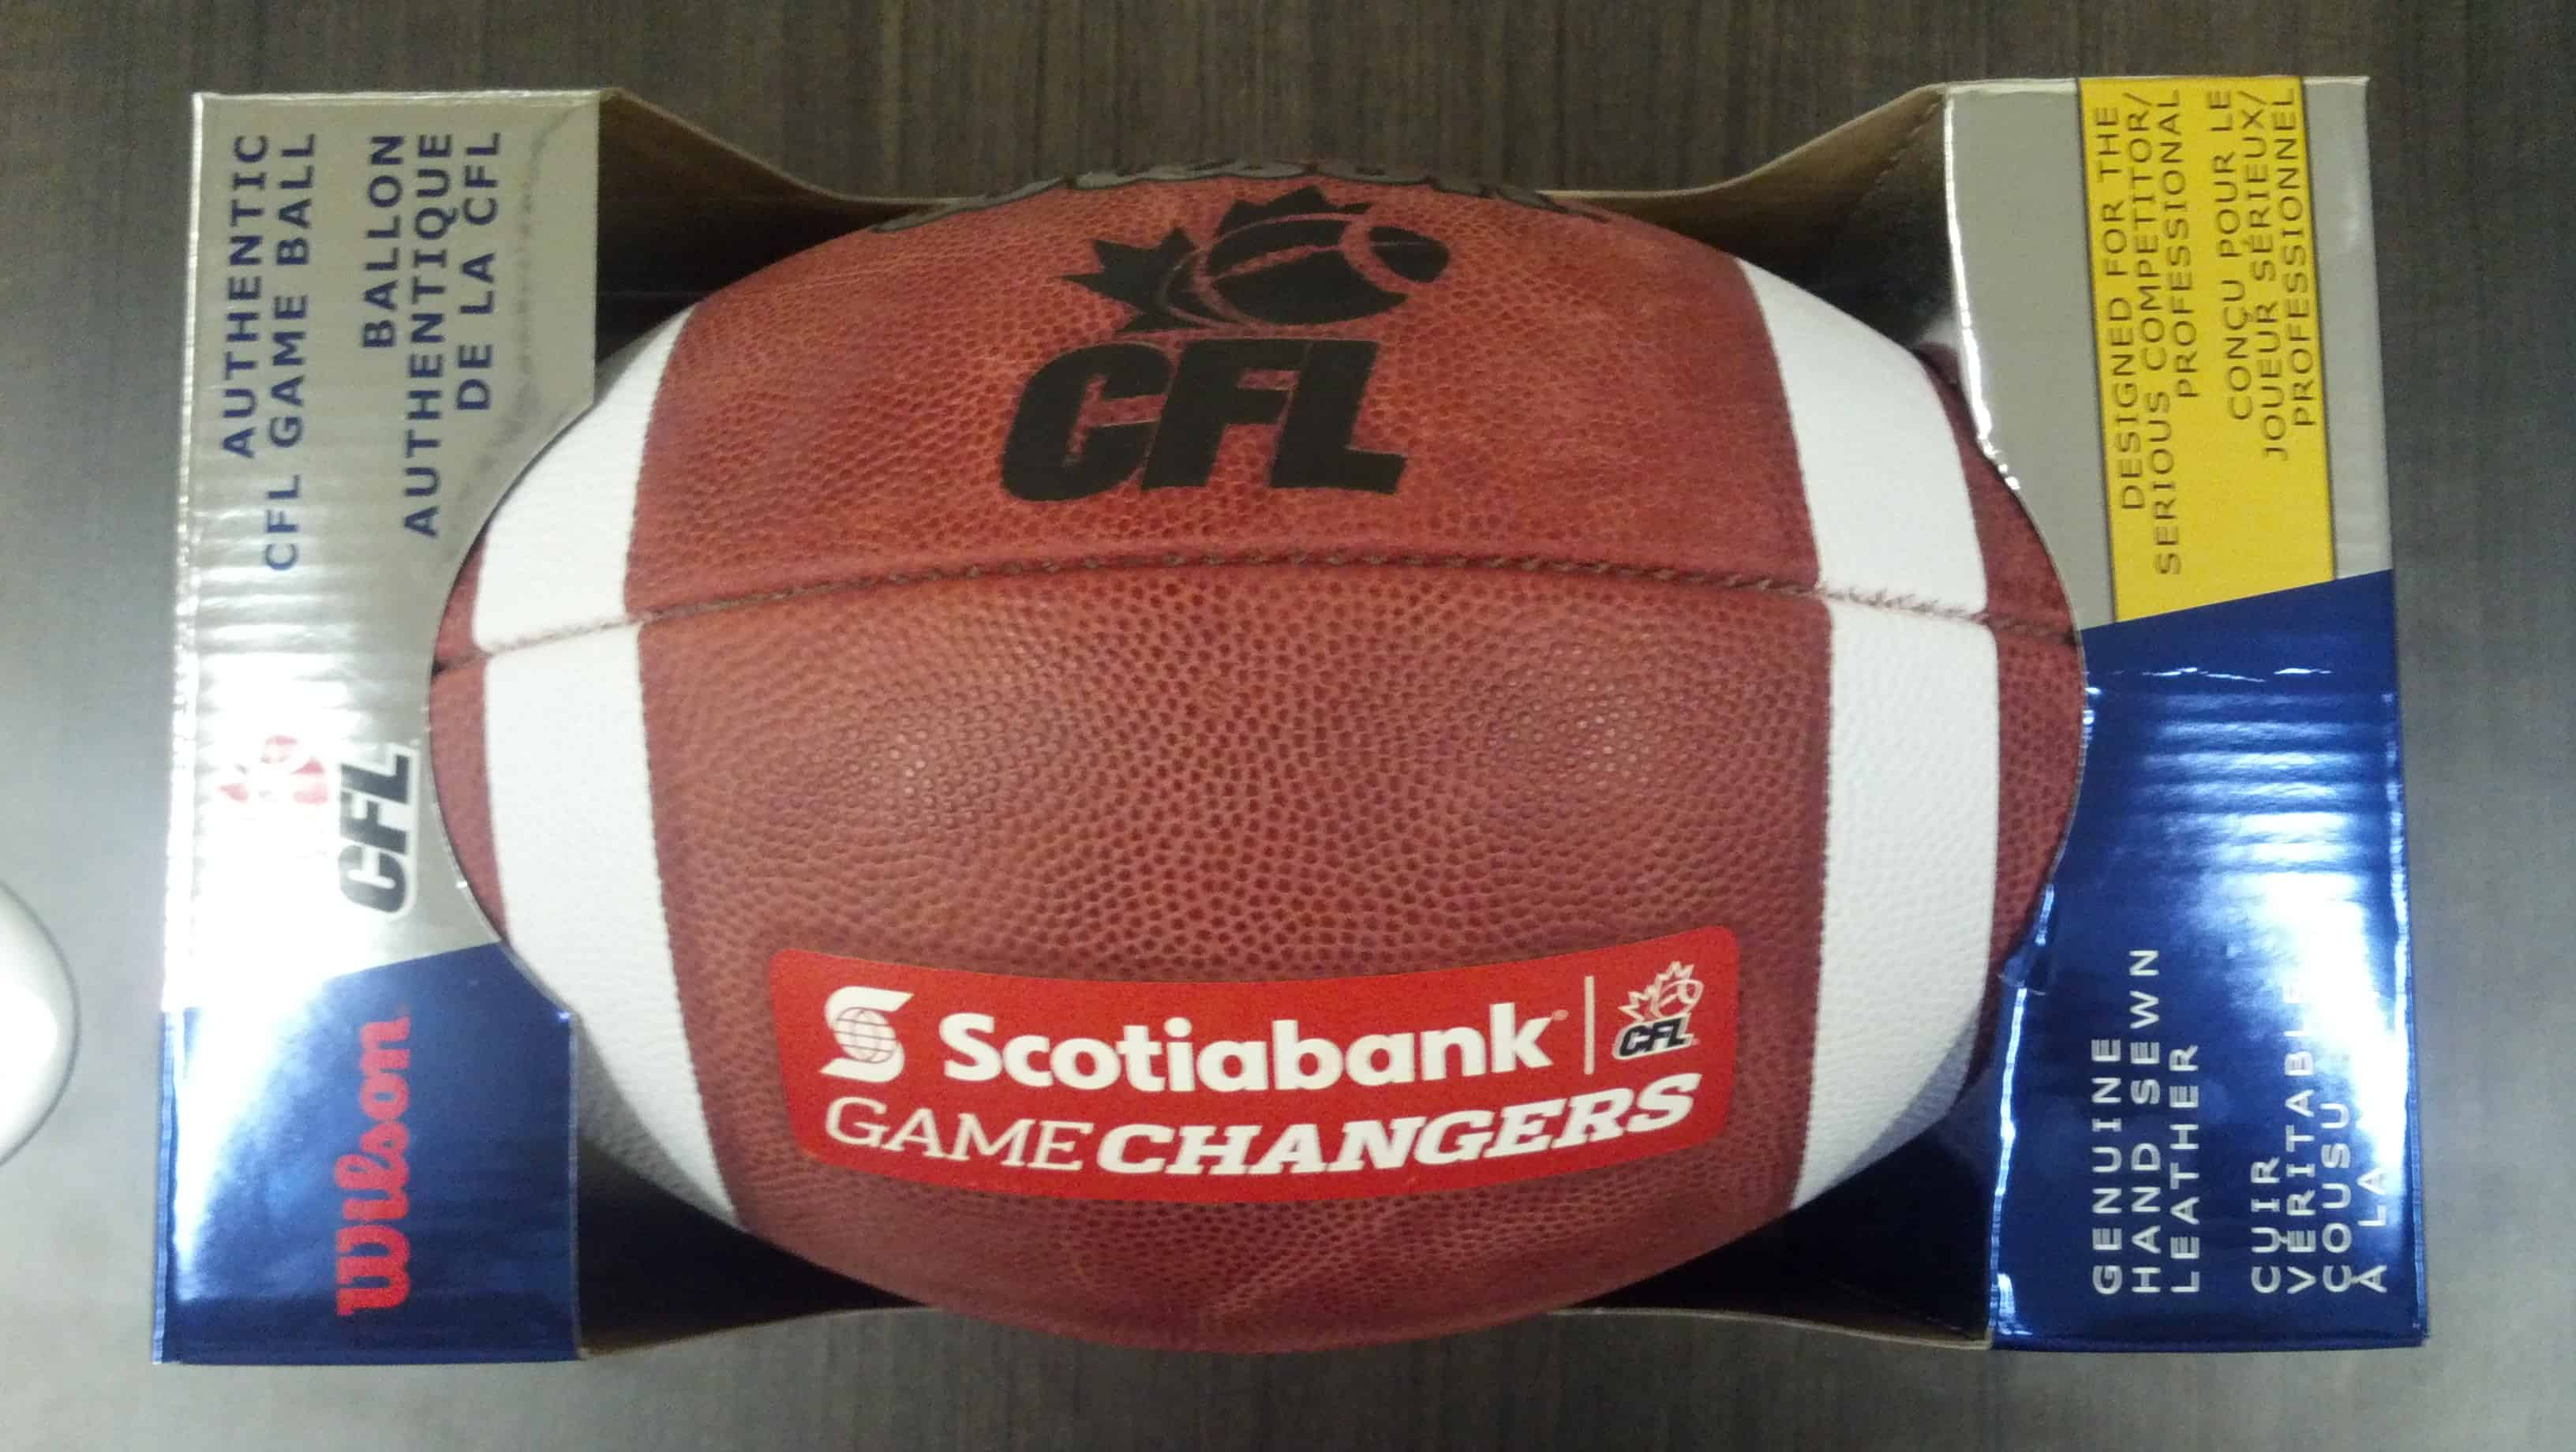 Nominate Someone as a Scotia Bank Game Changer #giveaway